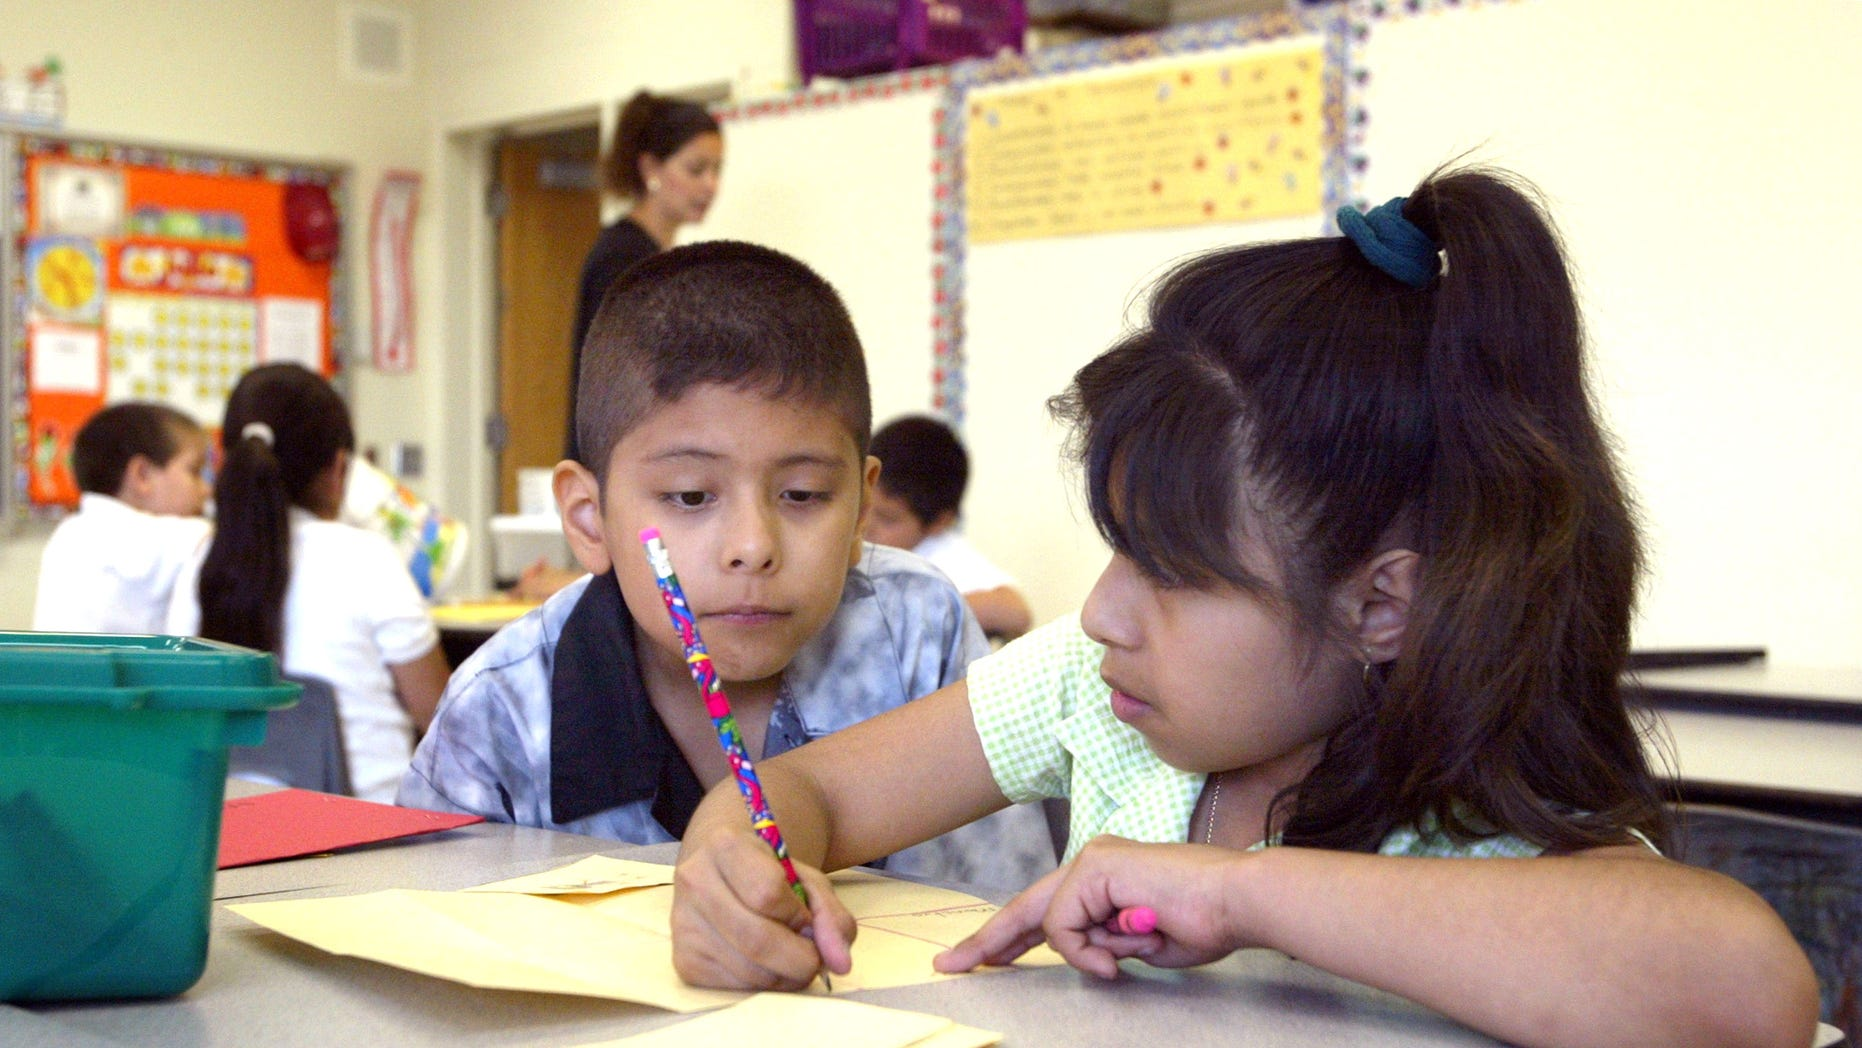 CHICAGO, IL - JULY 2:  Students work together in teacher Daisy Moran's second-grade bilingual class during summer school at Mozart School July 2, 2003 in Chicago, Illinois. A record number of students are expected at summer school due to a strong showing for a new voluntary program for mid-tier students and strict application of non-ITBS (Iowa Tests of Basic Skills) test promotion standards.  (Photo by Tim Boyle/Getty Images)